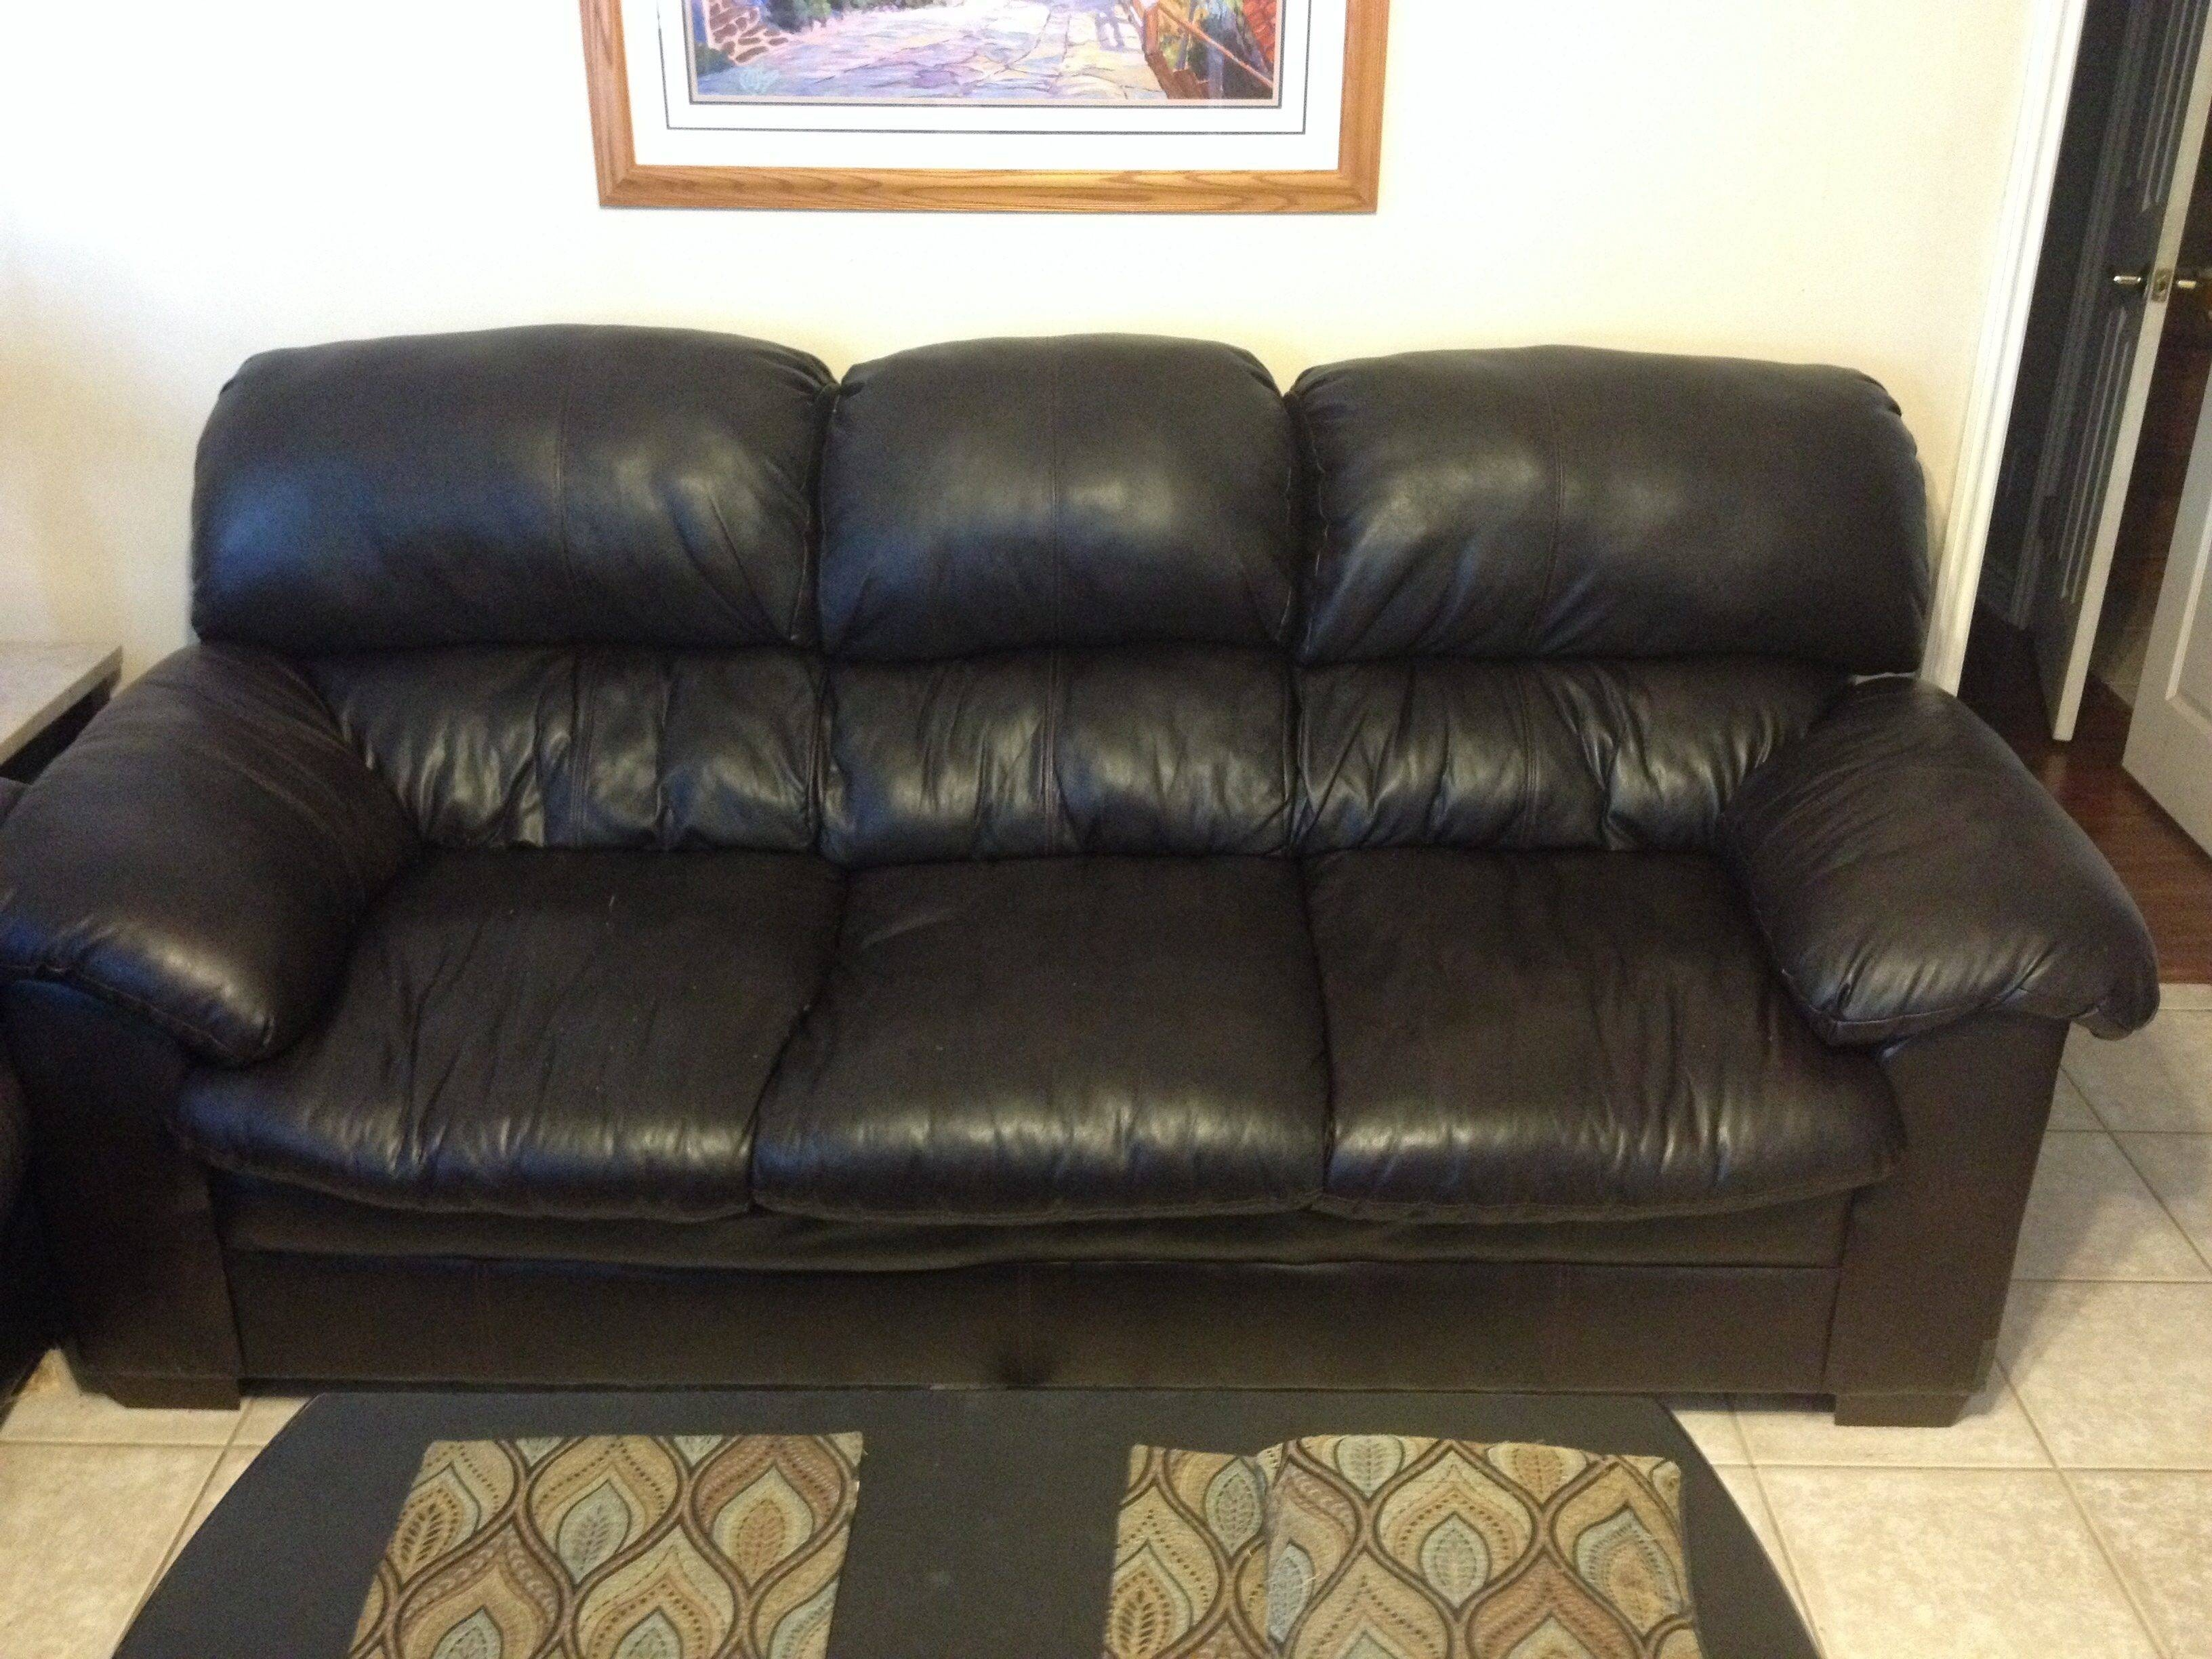 Stunning Sleeper Sofa Big Lots 34 About Remodel Sectional Sofa for Big Lots Simmons Sectional Sofas (Image 15 of 15)